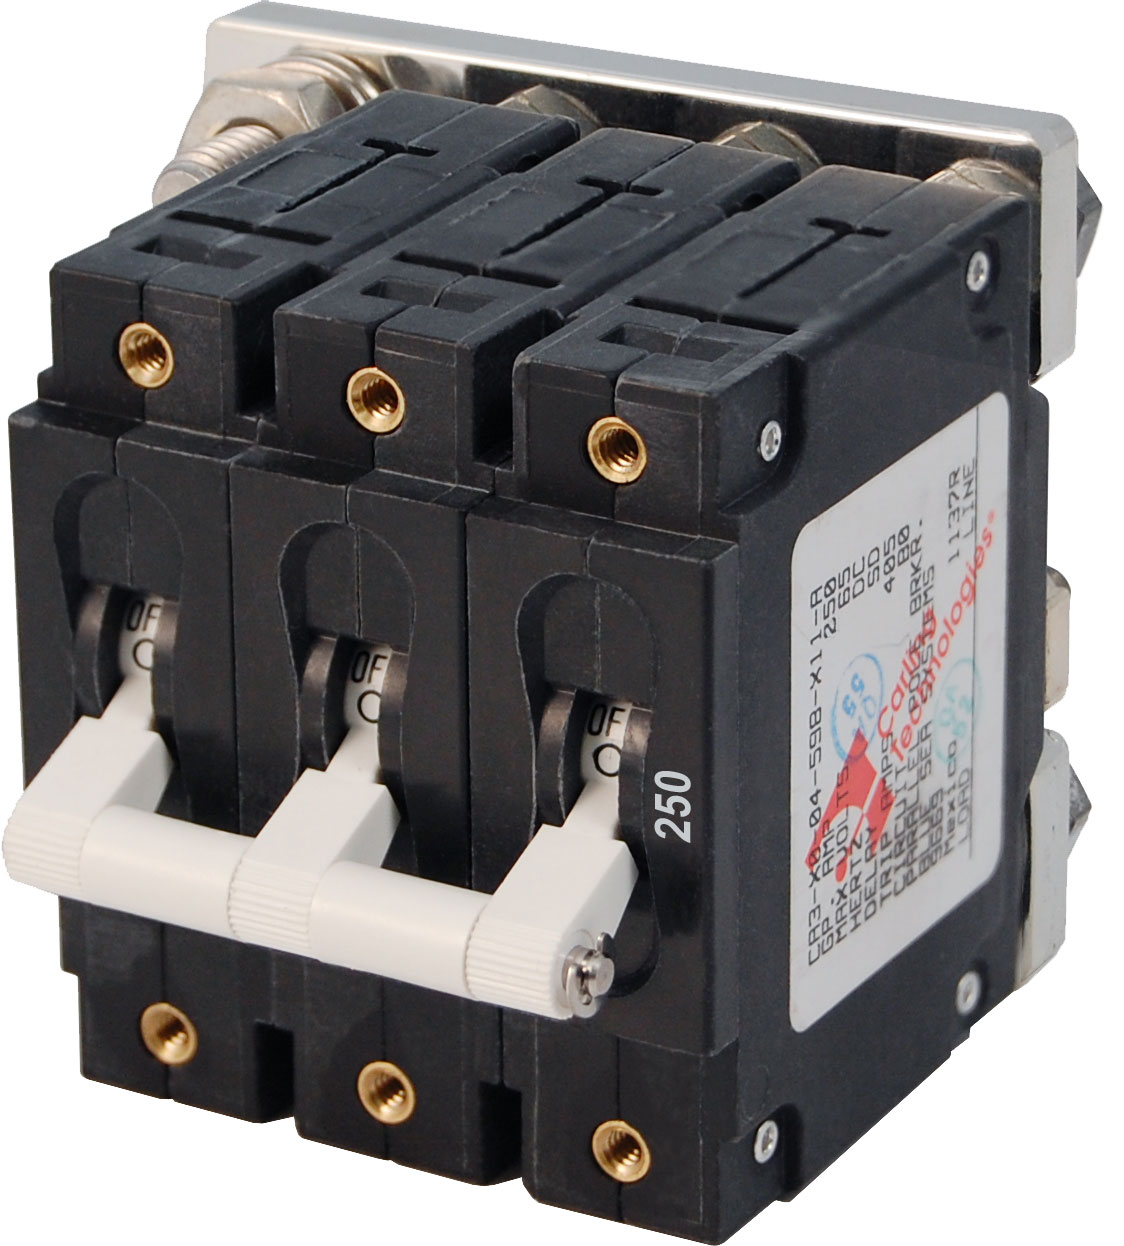 C Series White Toggle Circuit Breaker Triple Pole 250